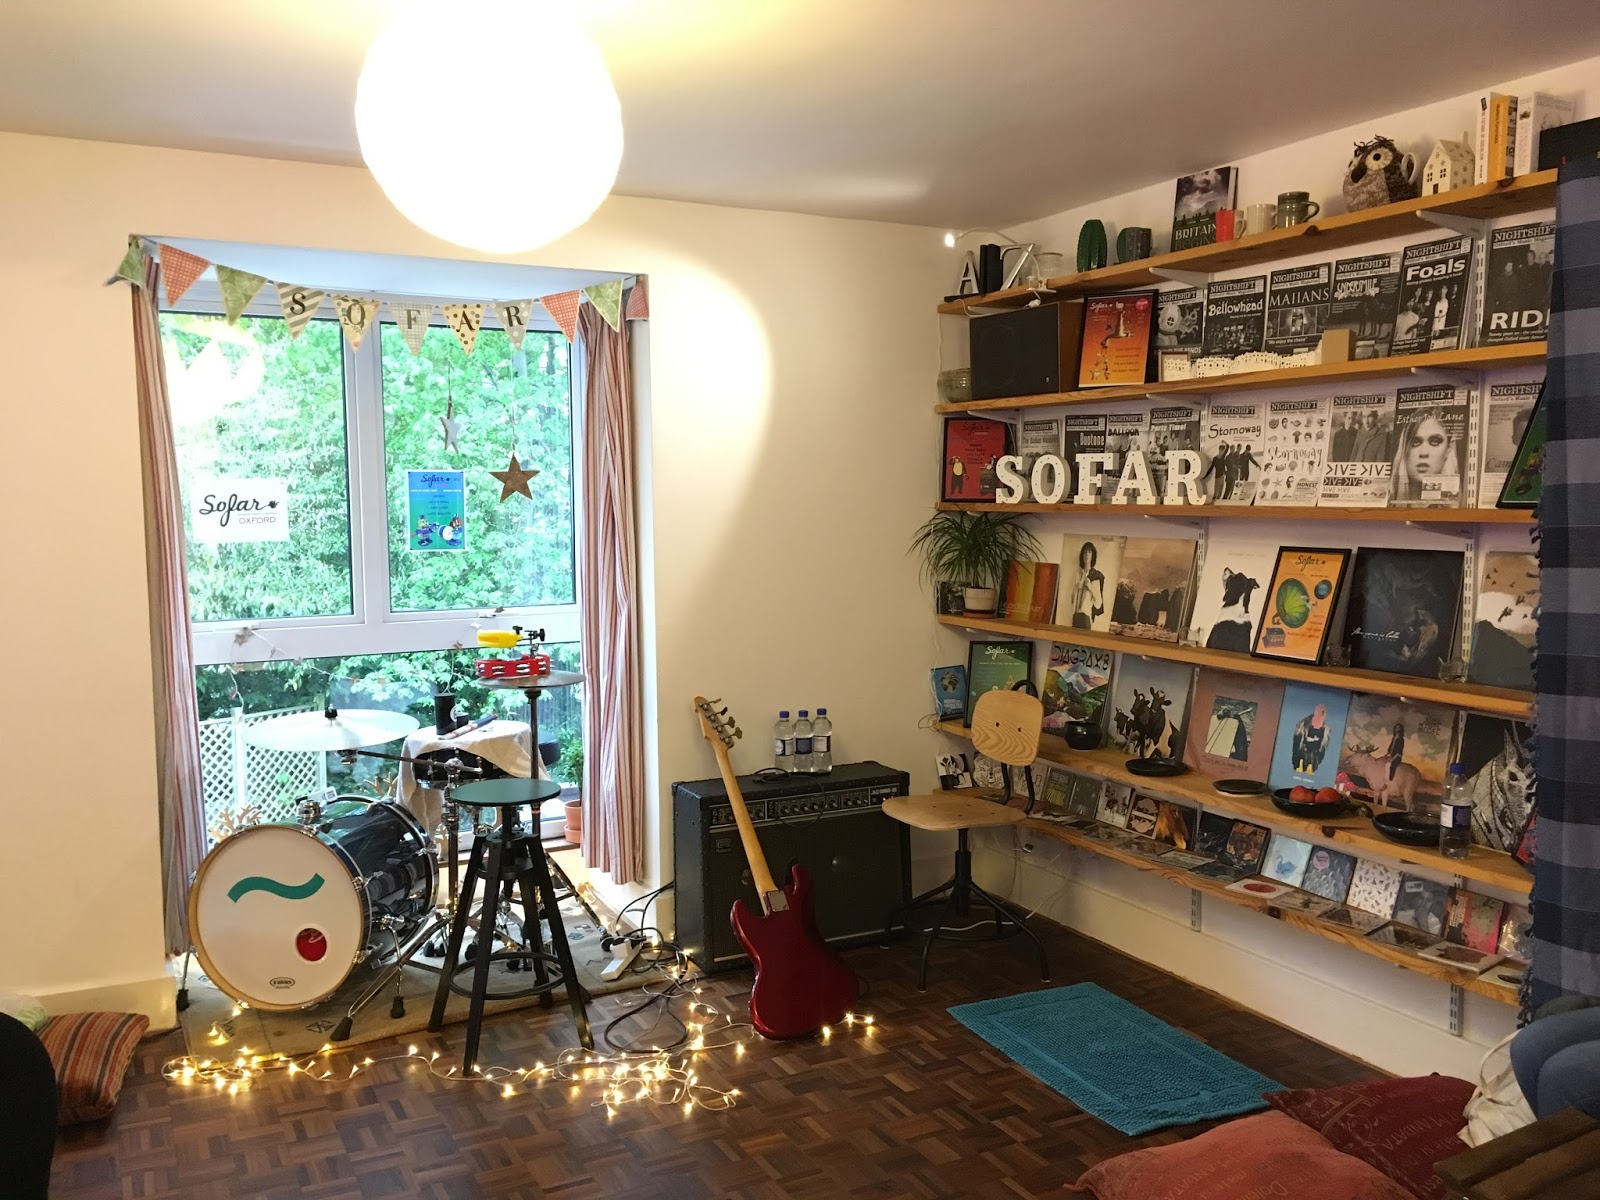 cool music and things: LIVE: Sofar Sounds Oxford house gig